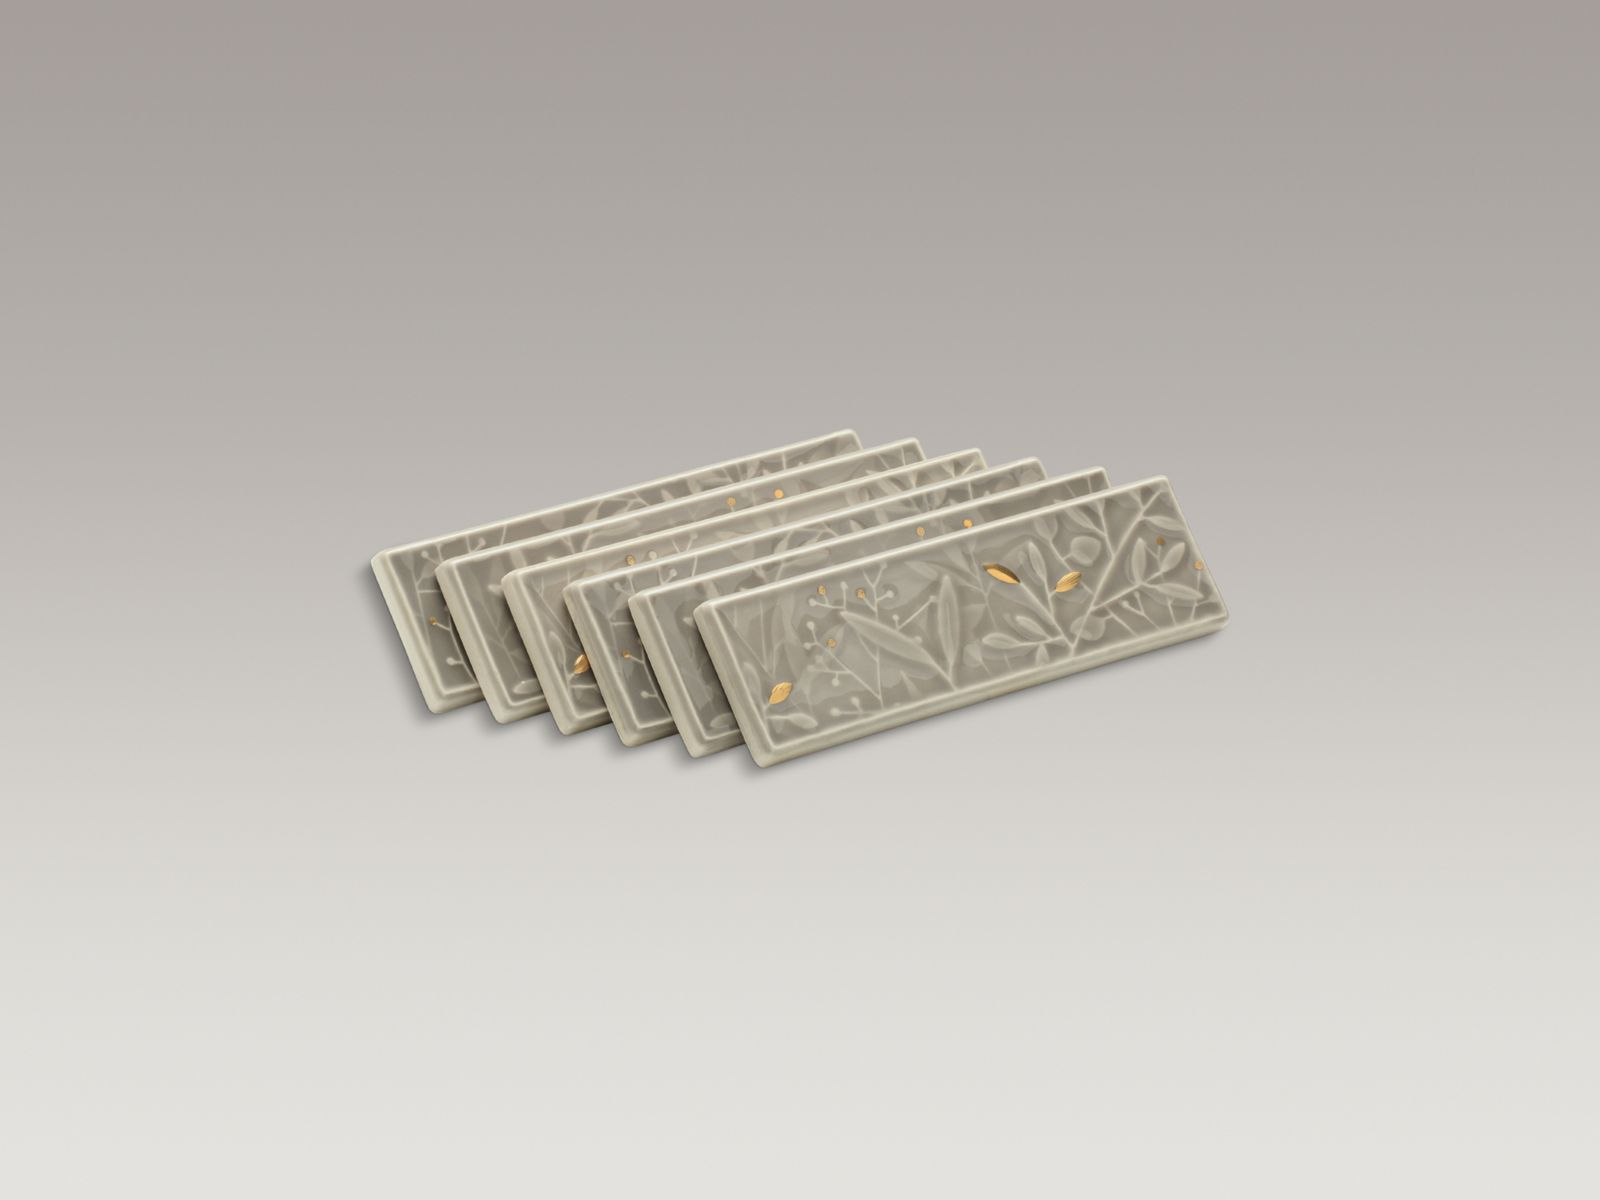 Gilded Meadow™ decorative tile (set of 6) with gold accents